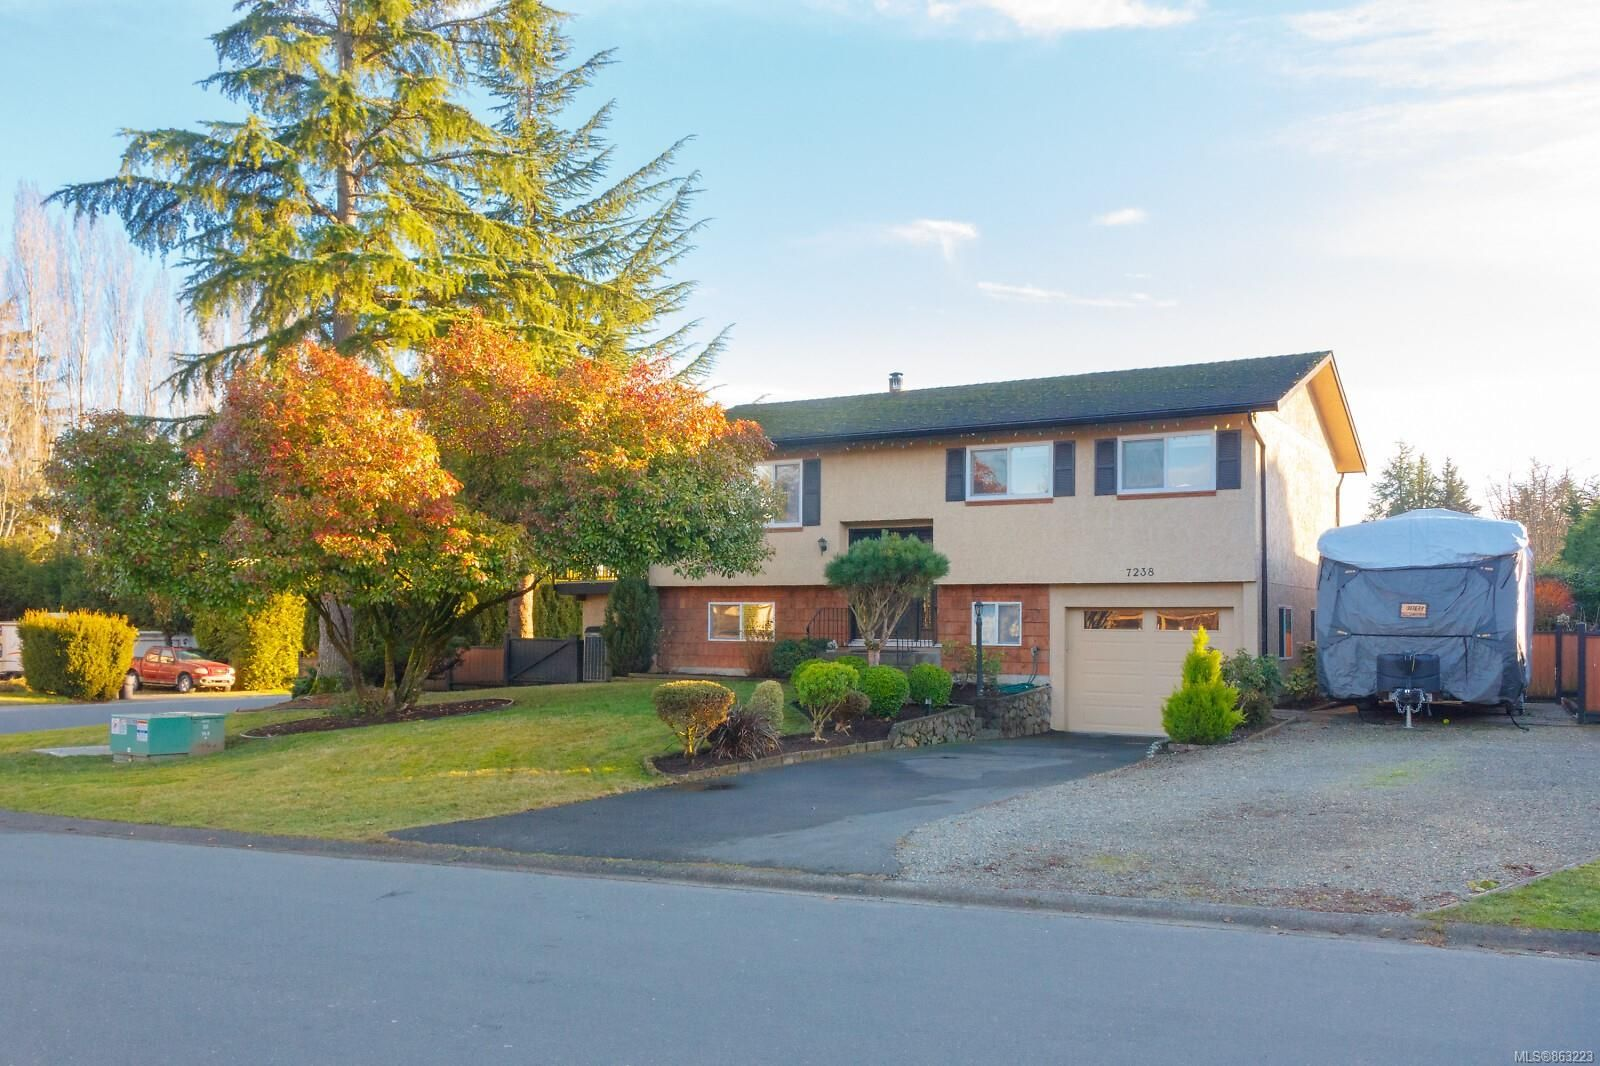 Main Photo: 7238 Early Pl in : CS Brentwood Bay House for sale (Central Saanich)  : MLS®# 863223